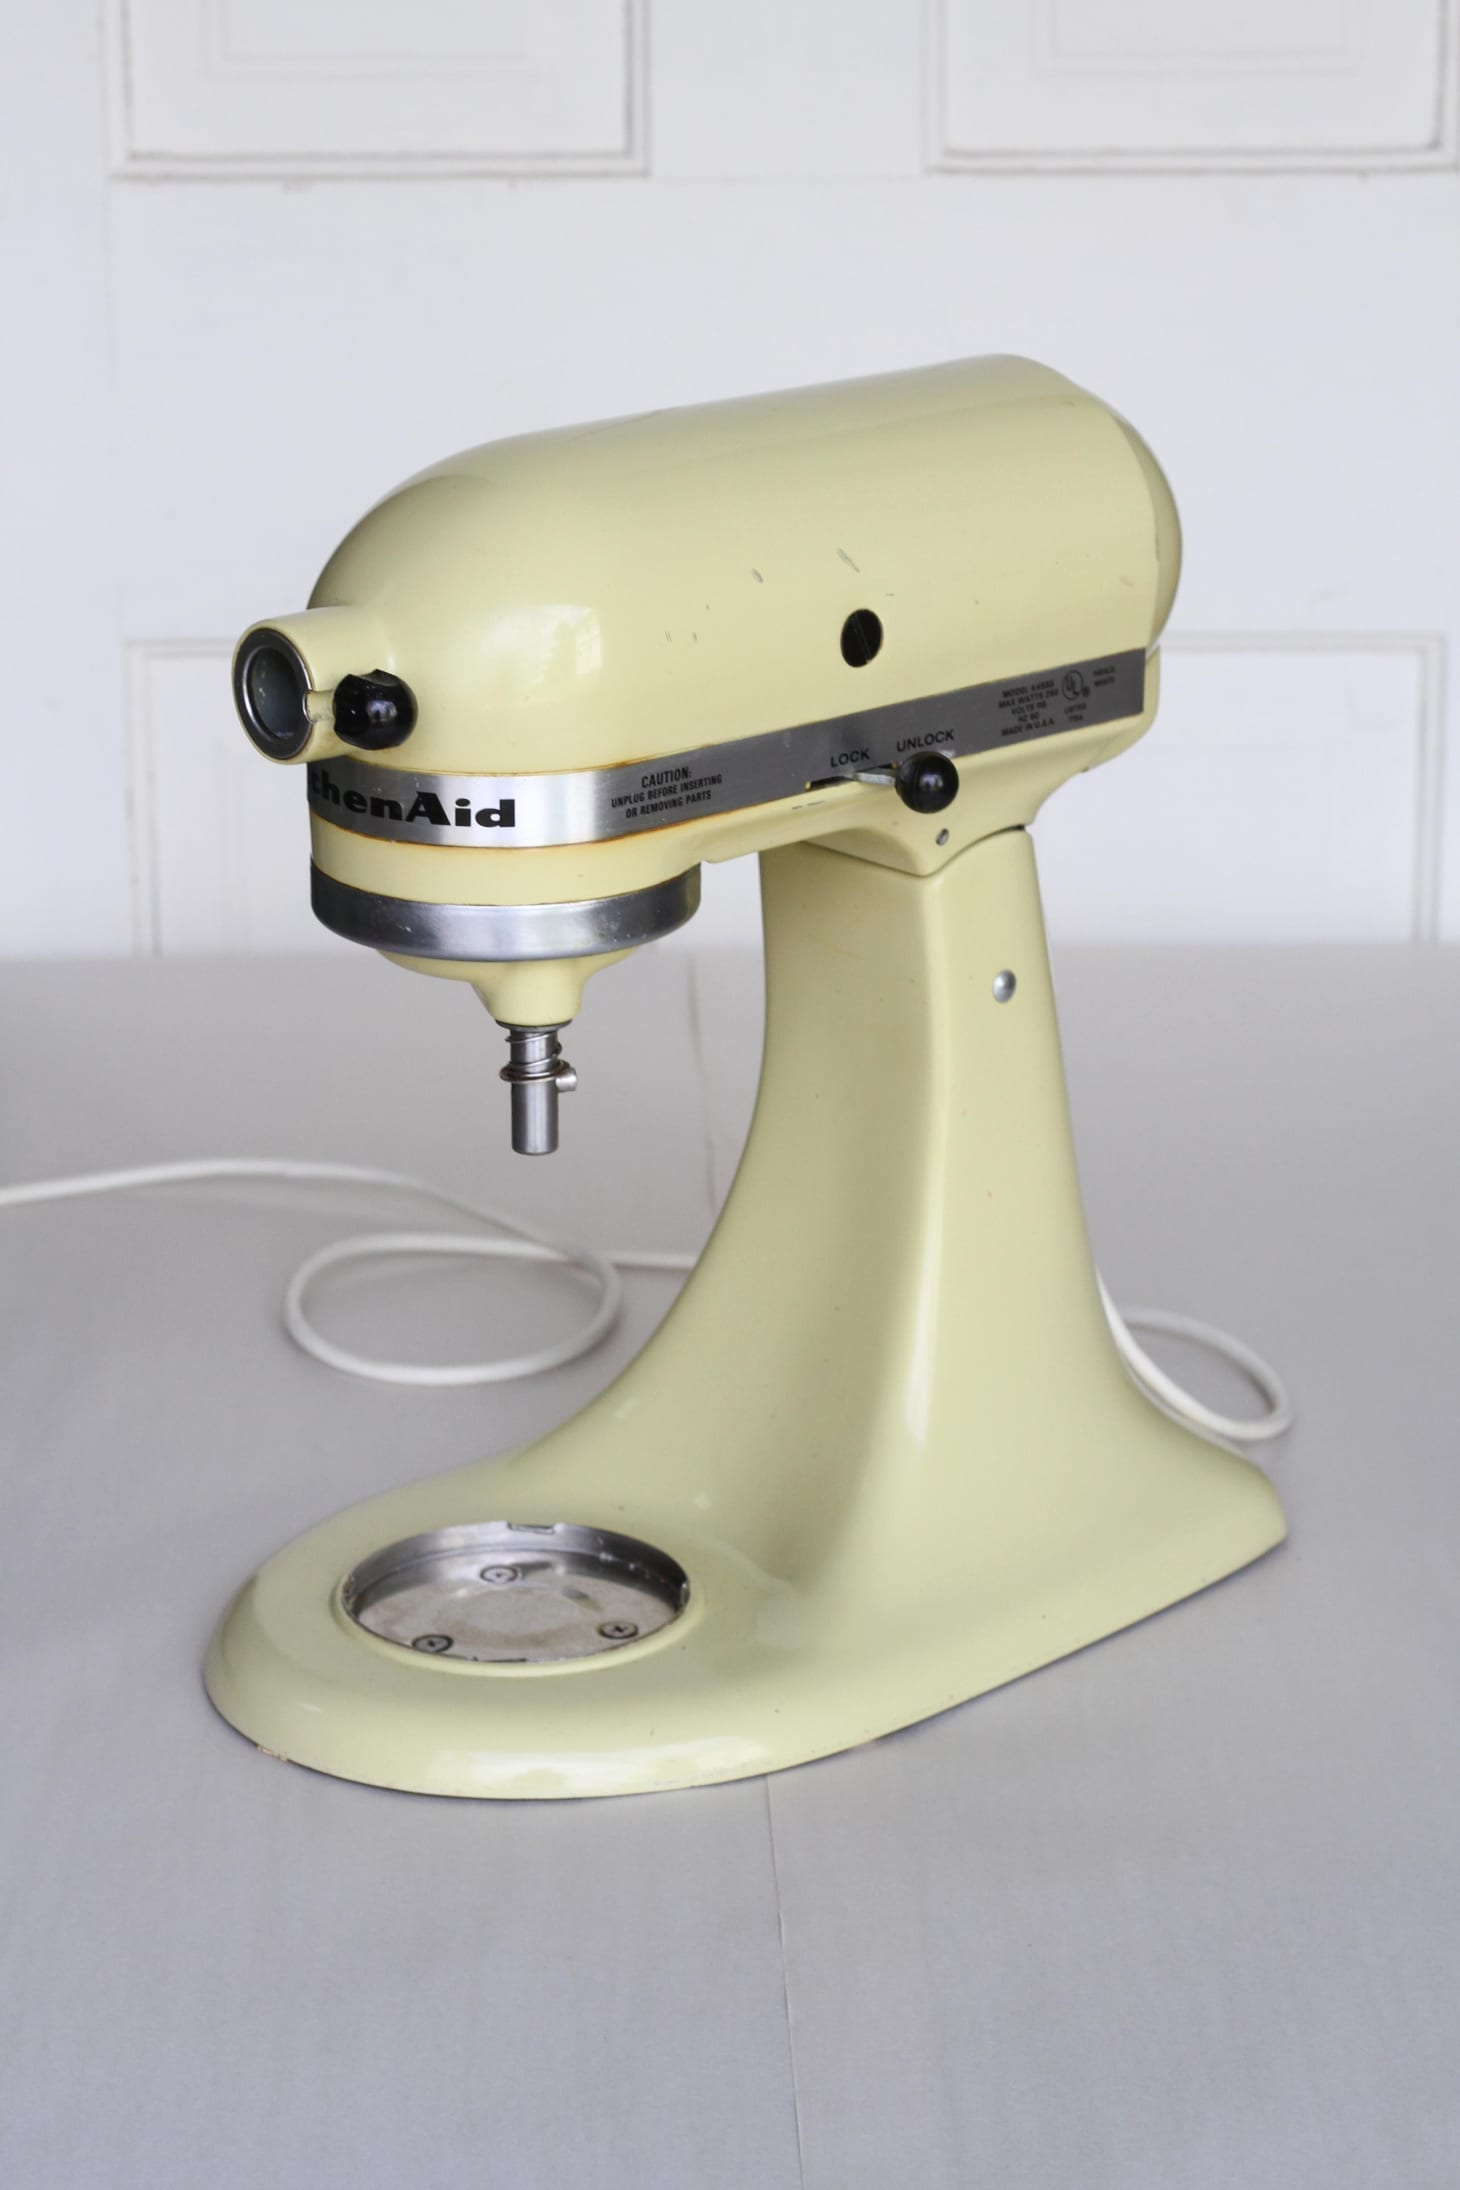 How To Paint A Kitchenaid Mixer A New Color Apartment Therapy